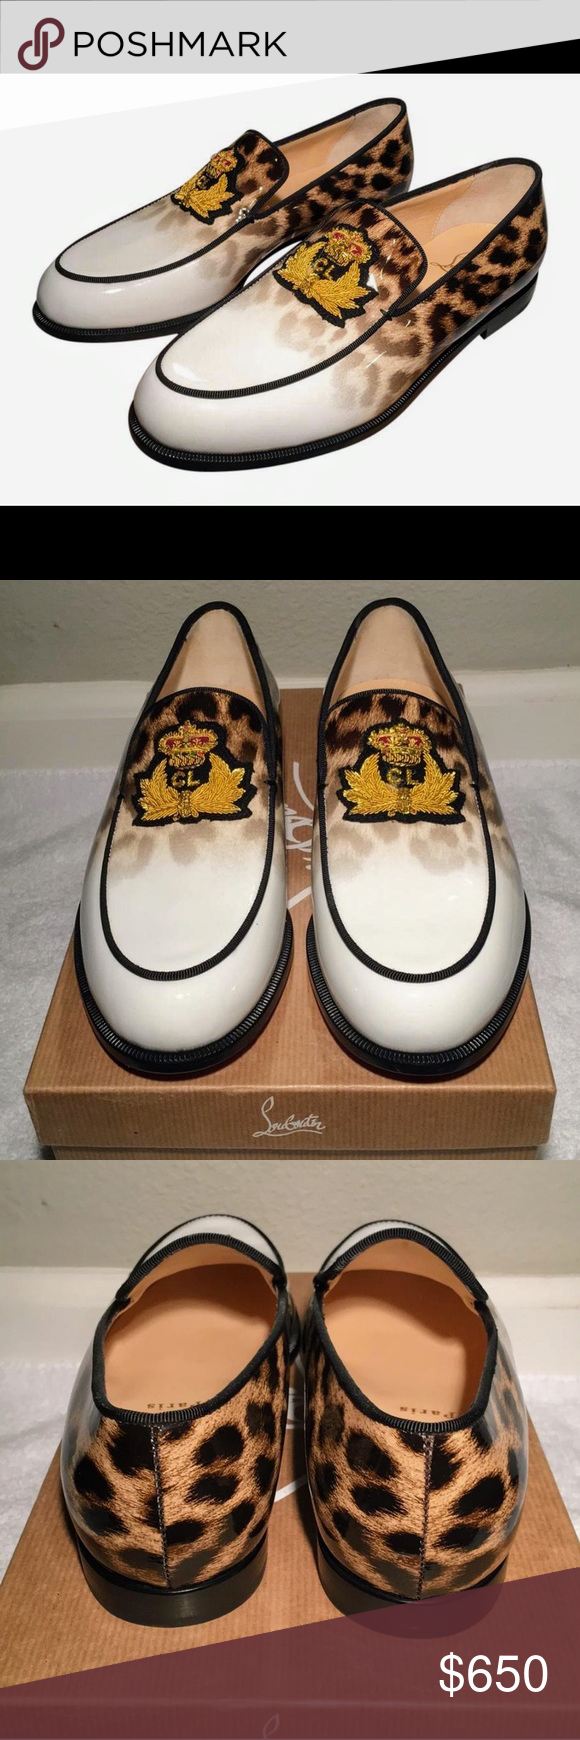 adac1b41c952 🌺C. LOUBOUTIN🌺LEOPARD CREST LAPEROUZA LOAFERS🌺 🌺🌺LIKE NEW CONDITION  🌺🌺MINIMAL WEAR🌺🌺HOT🔥HOT🔥HOT🔥FULL PATENT LEATHER LOAFERS🌺🌺PRICE ...